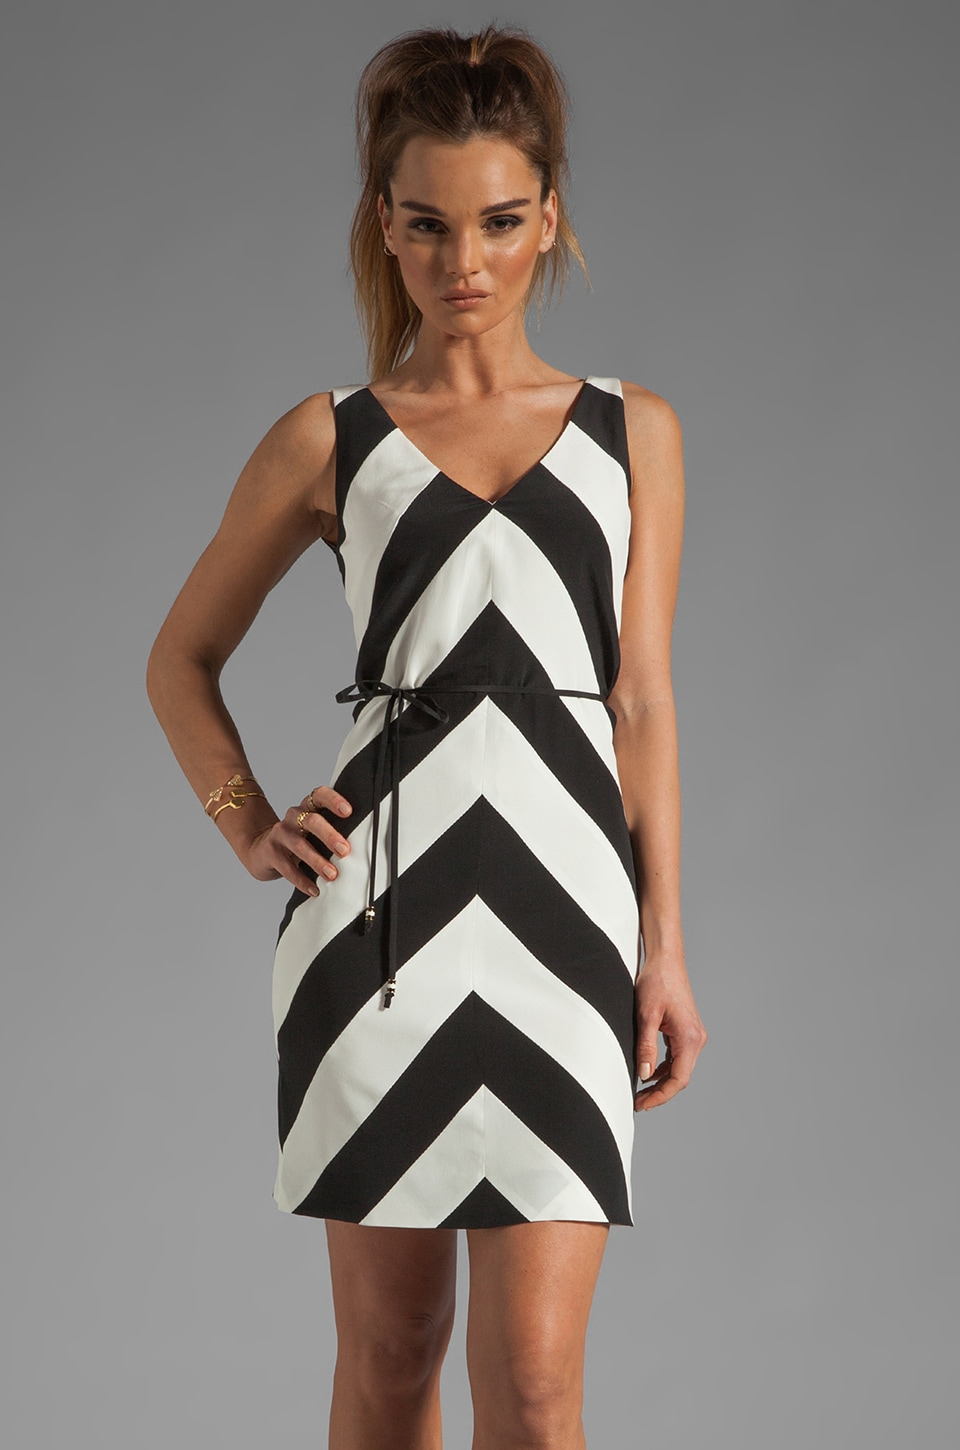 Trina Turk Tally Dress in Black/White